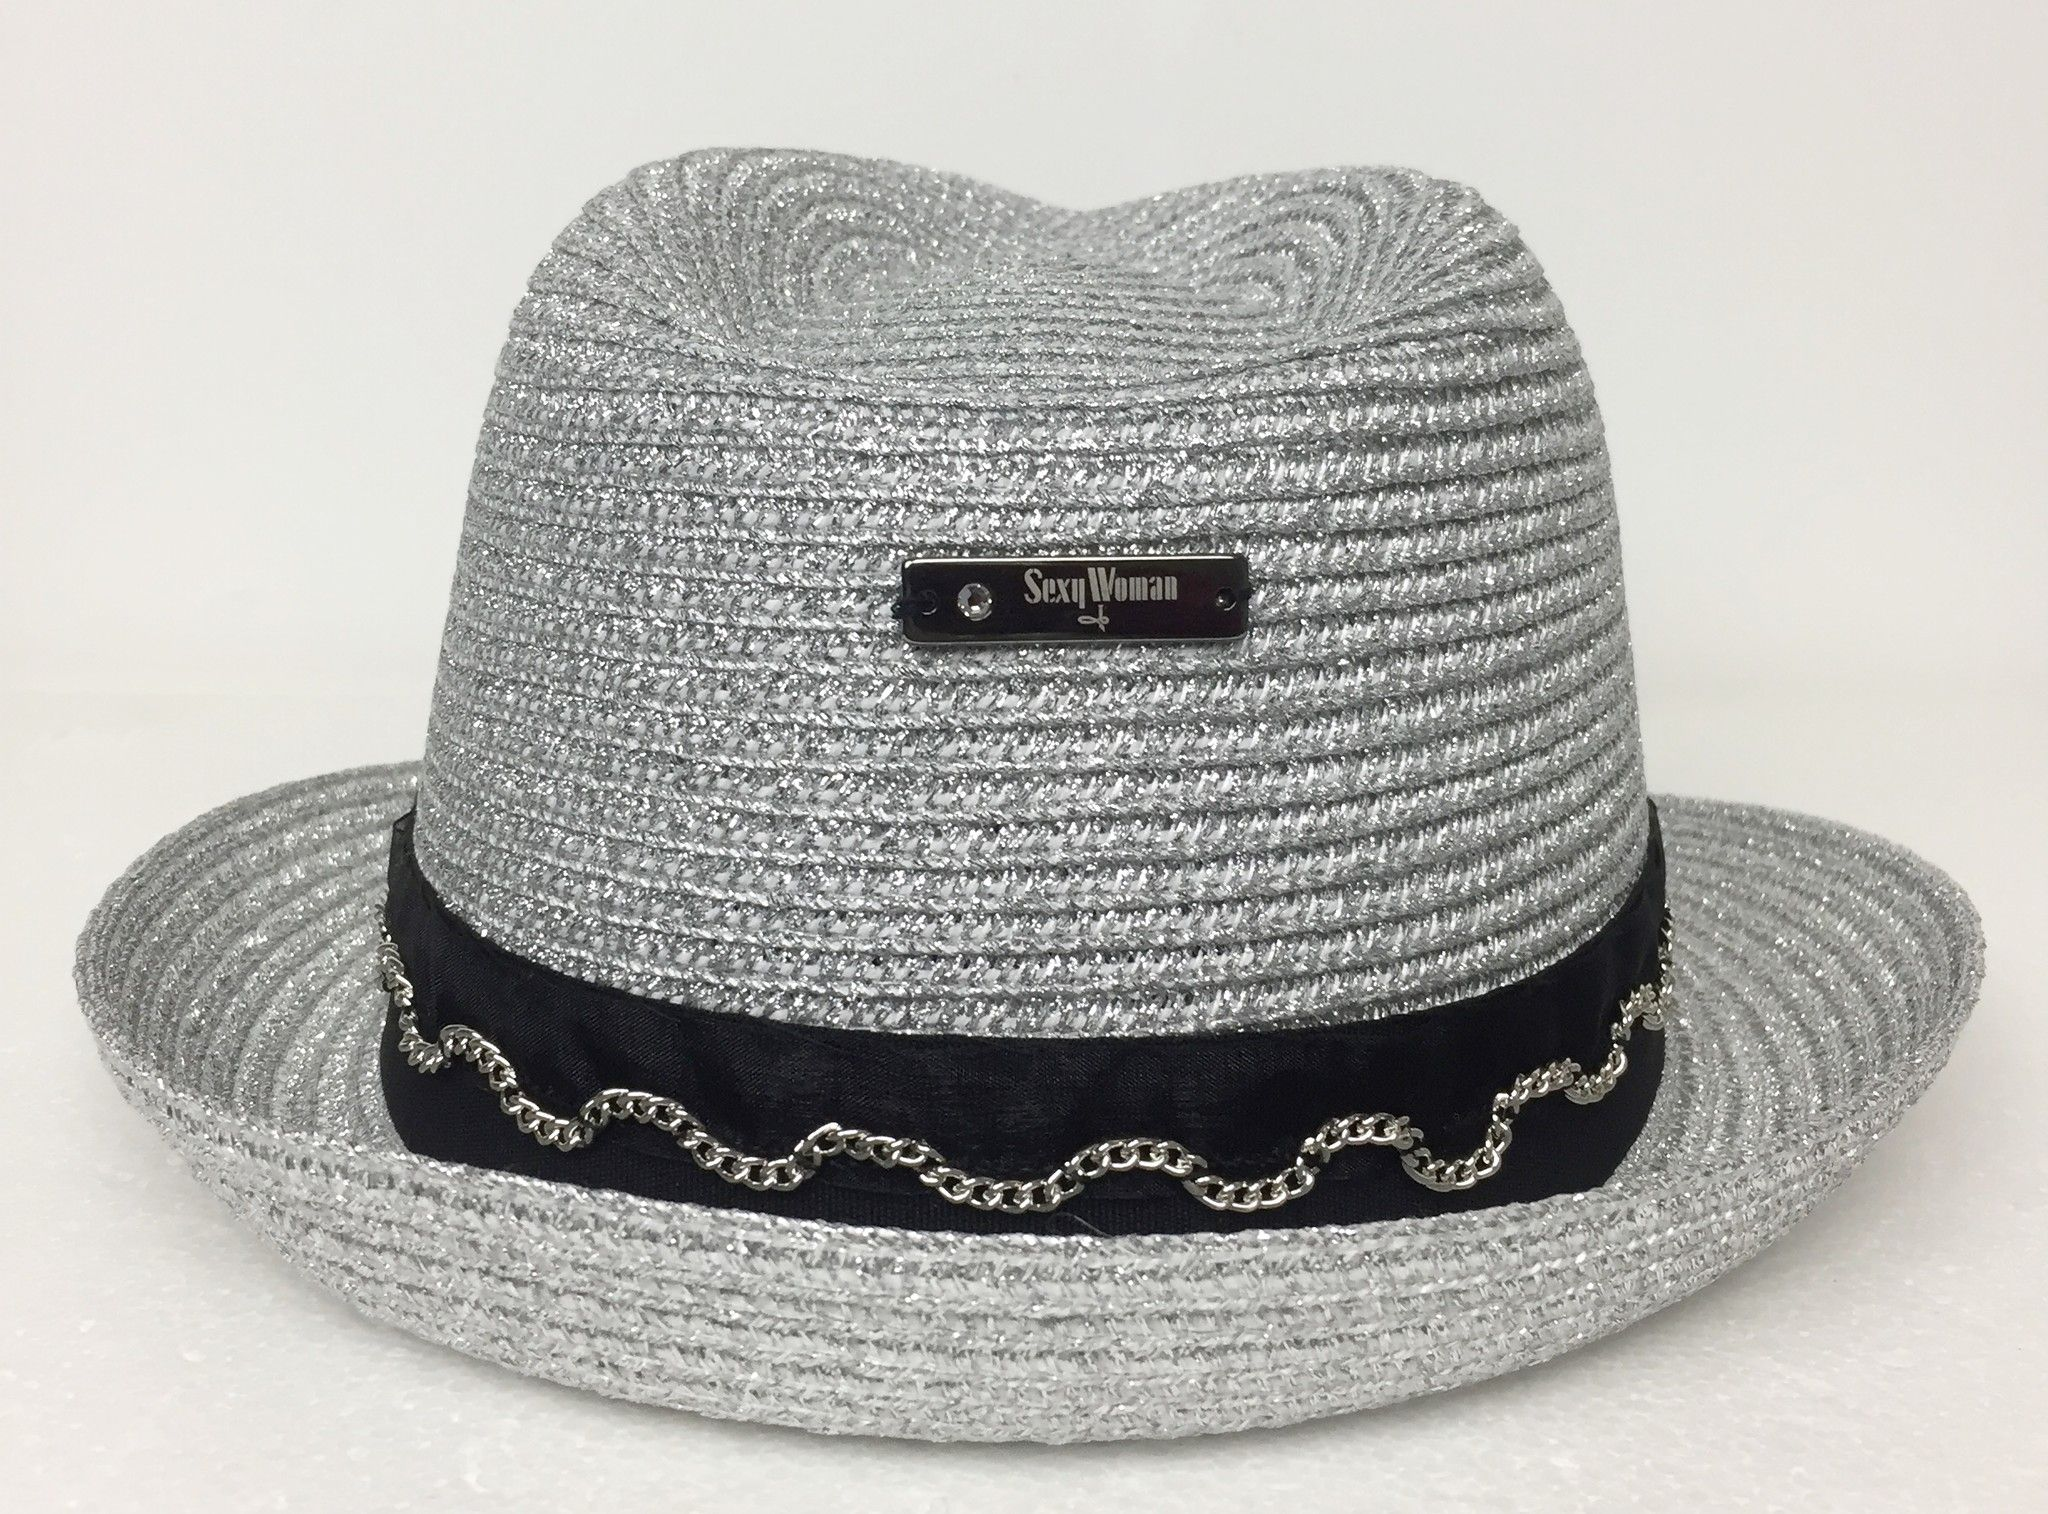 Sexy Woman Lurex Hat with Black Band Cod.01003A15